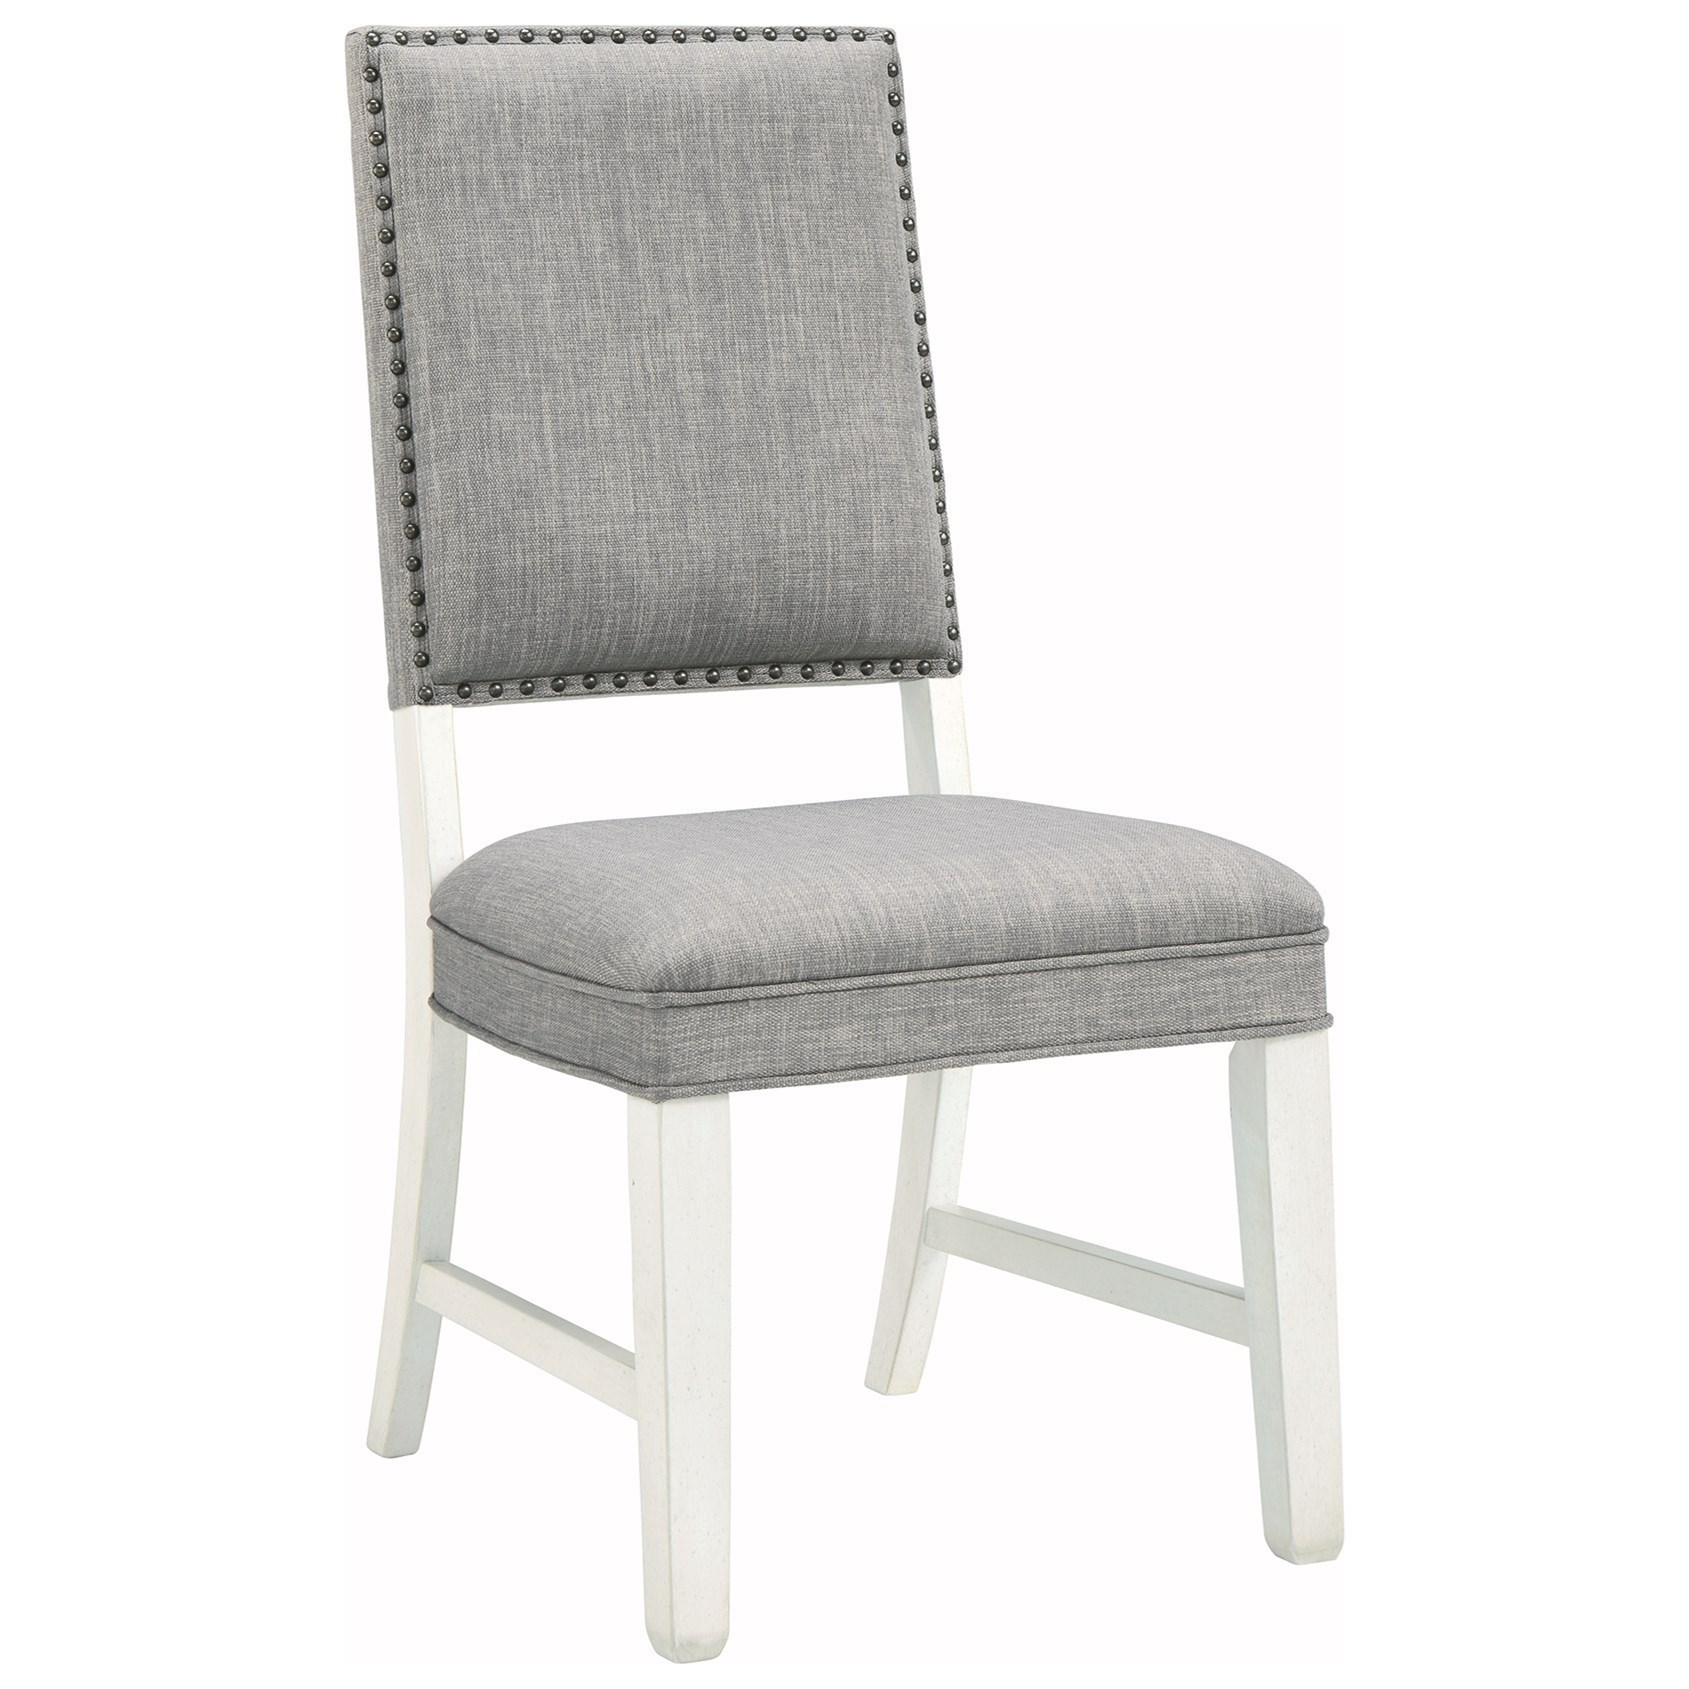 Nashbryn Dining Chair by Benchcraft at Walker's Furniture